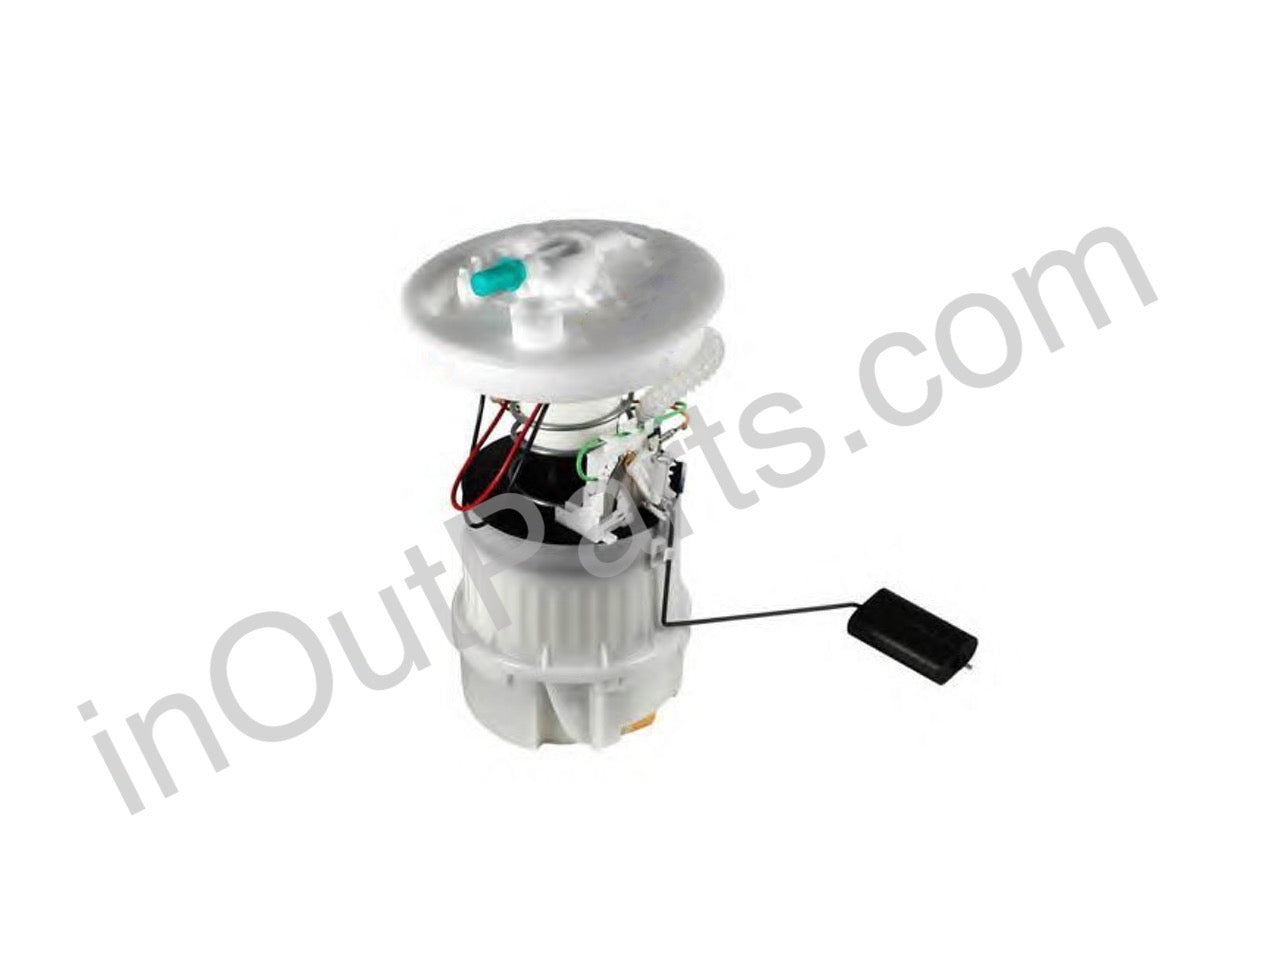 2010 Ford Focus Fuel Filter Location Fits Max With Pump 1280x960